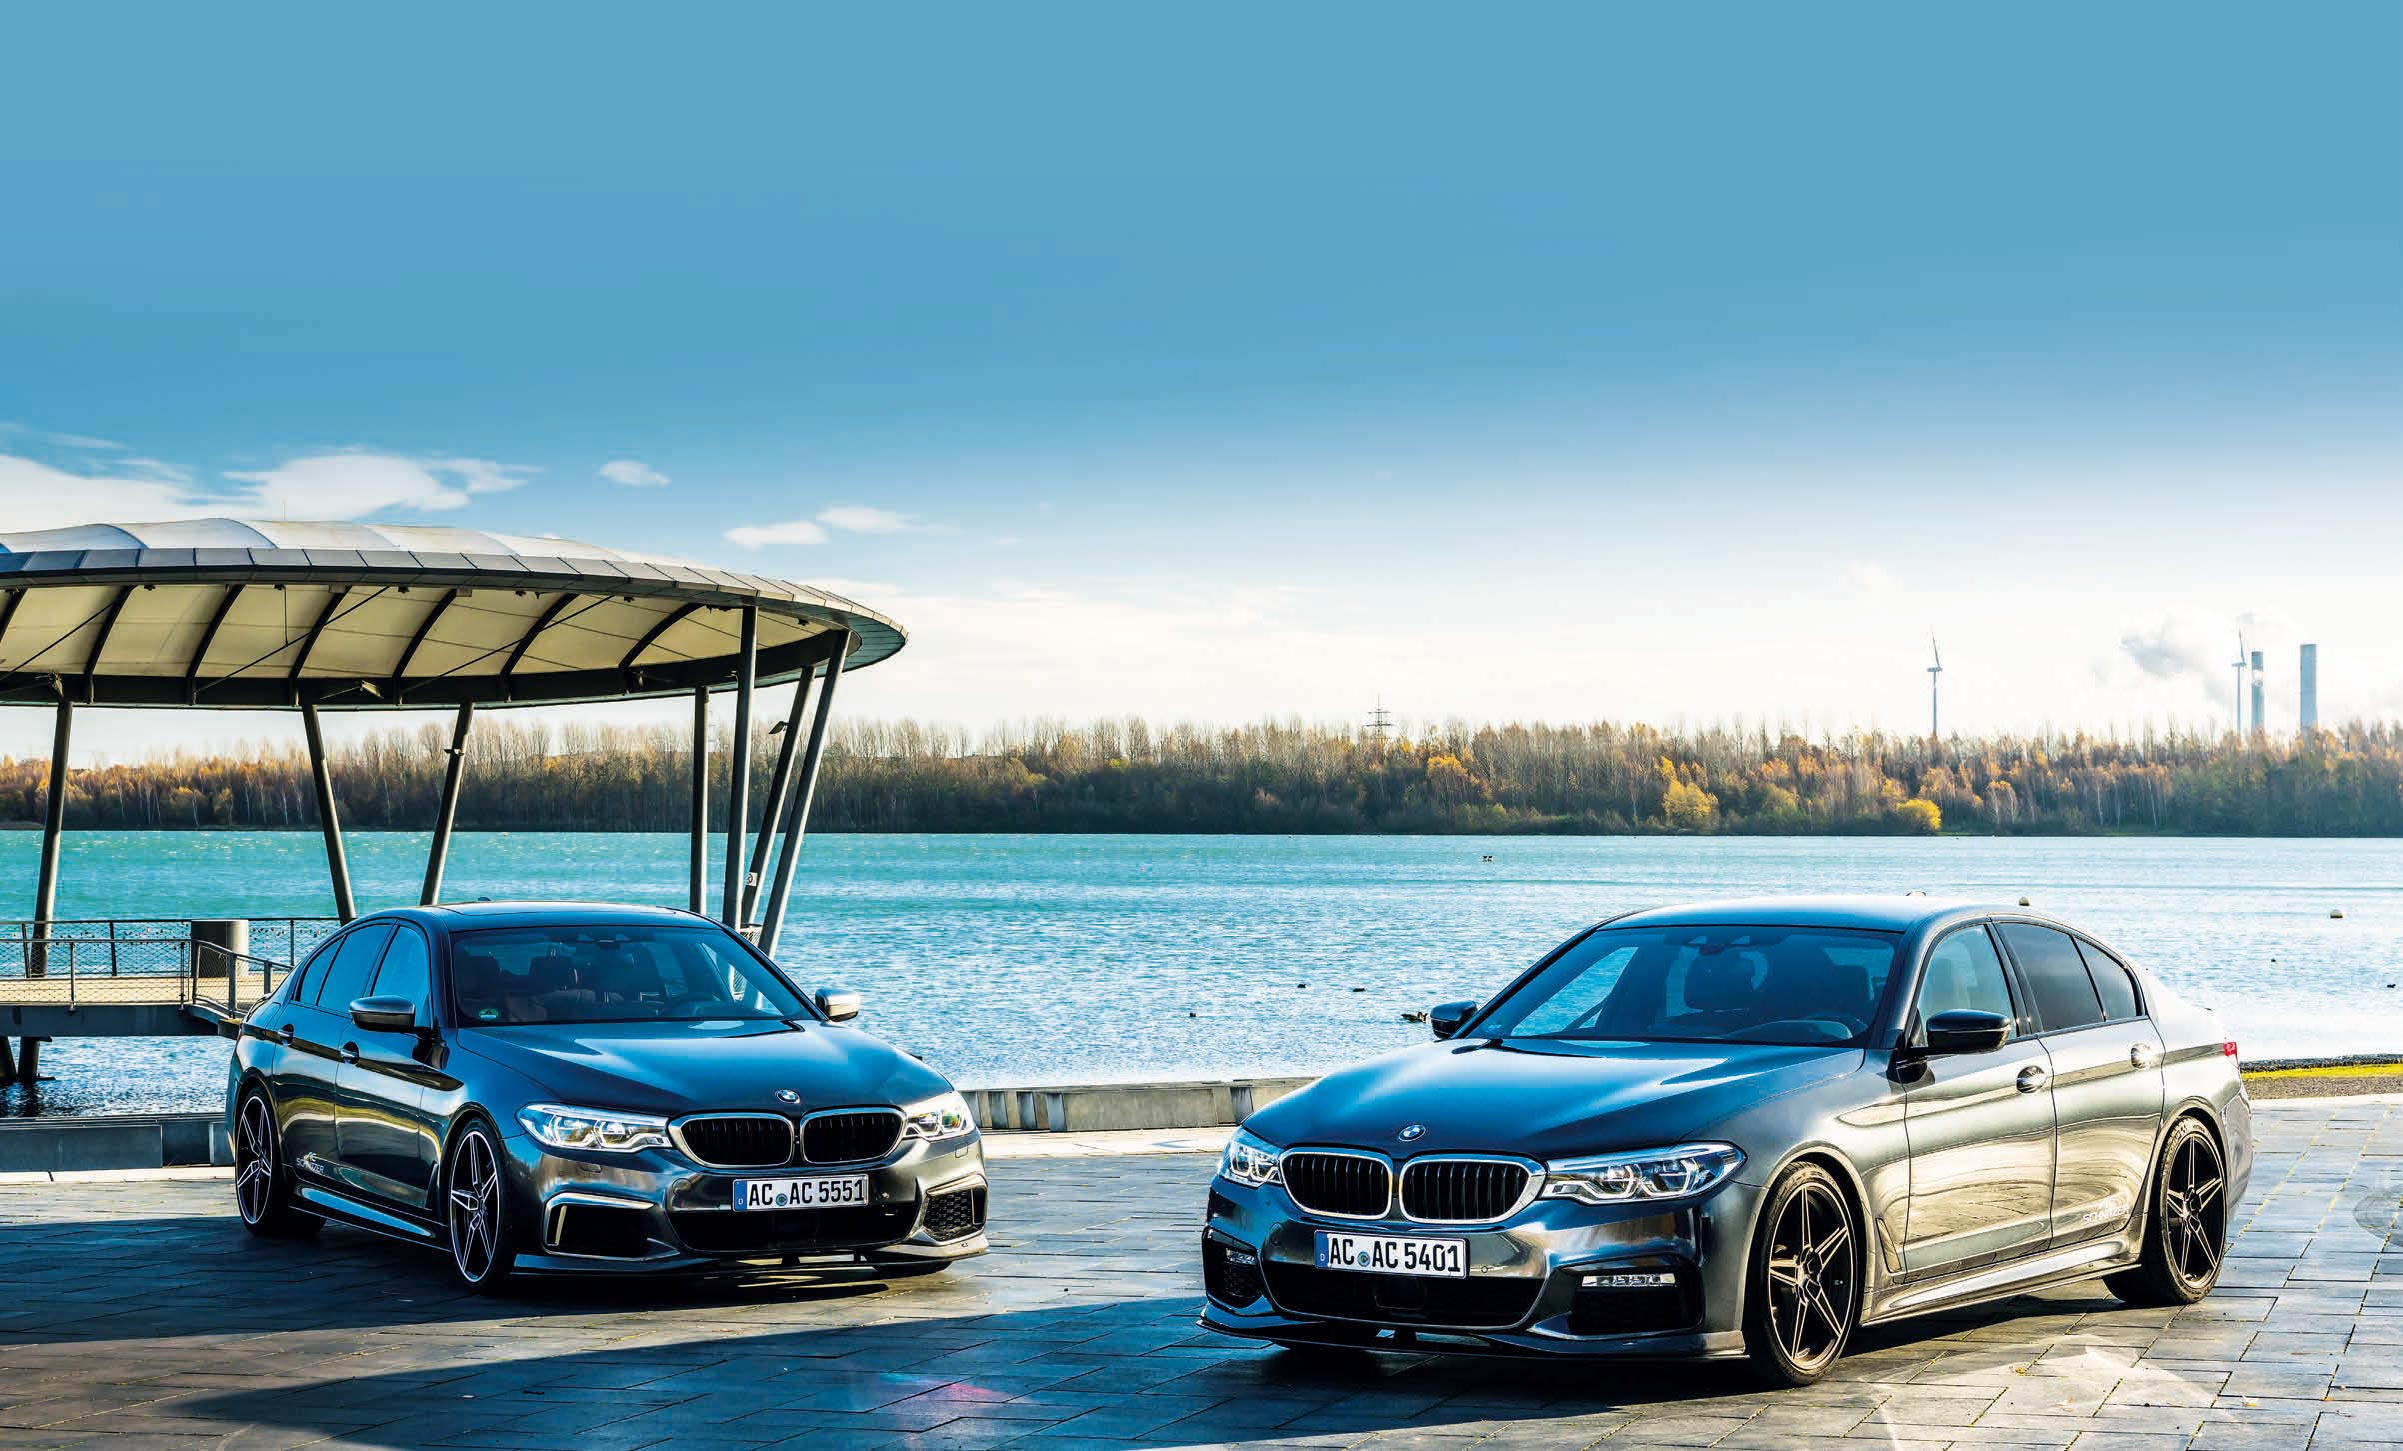 BMW I G And Mi G AC Schnitzer Tuned Fully Tested - Schnitzer